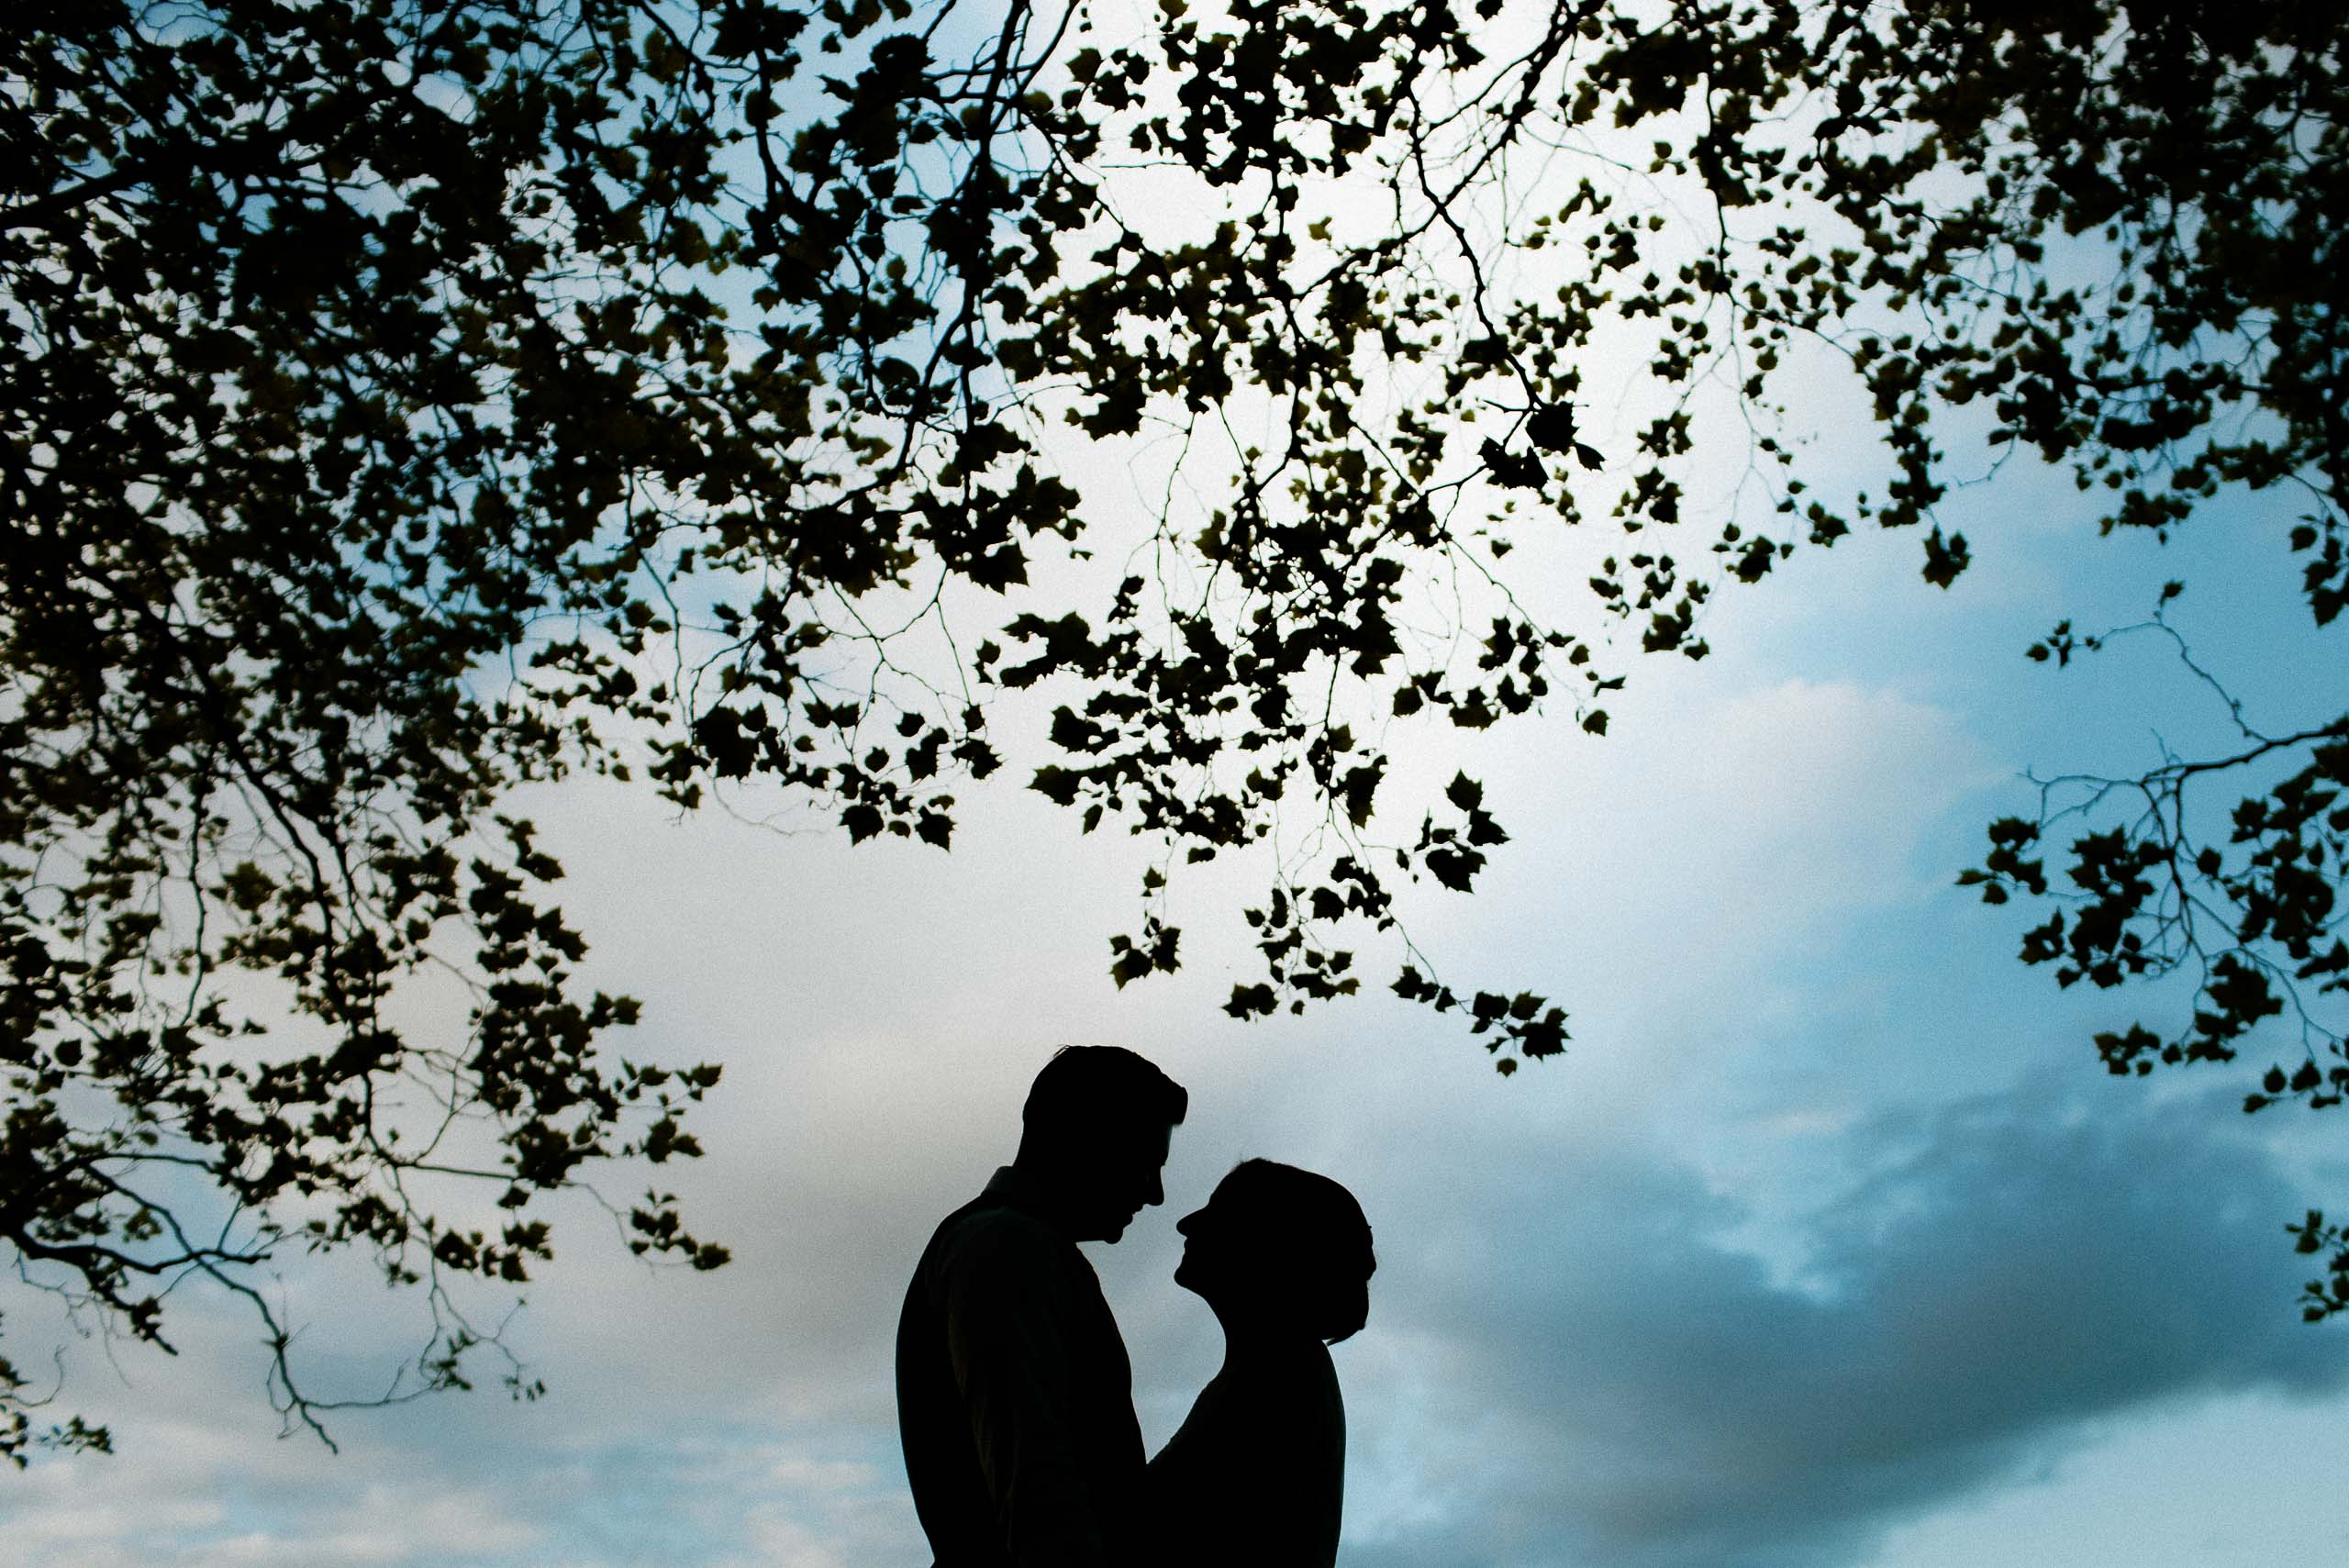 bride and groom silhouette under trees